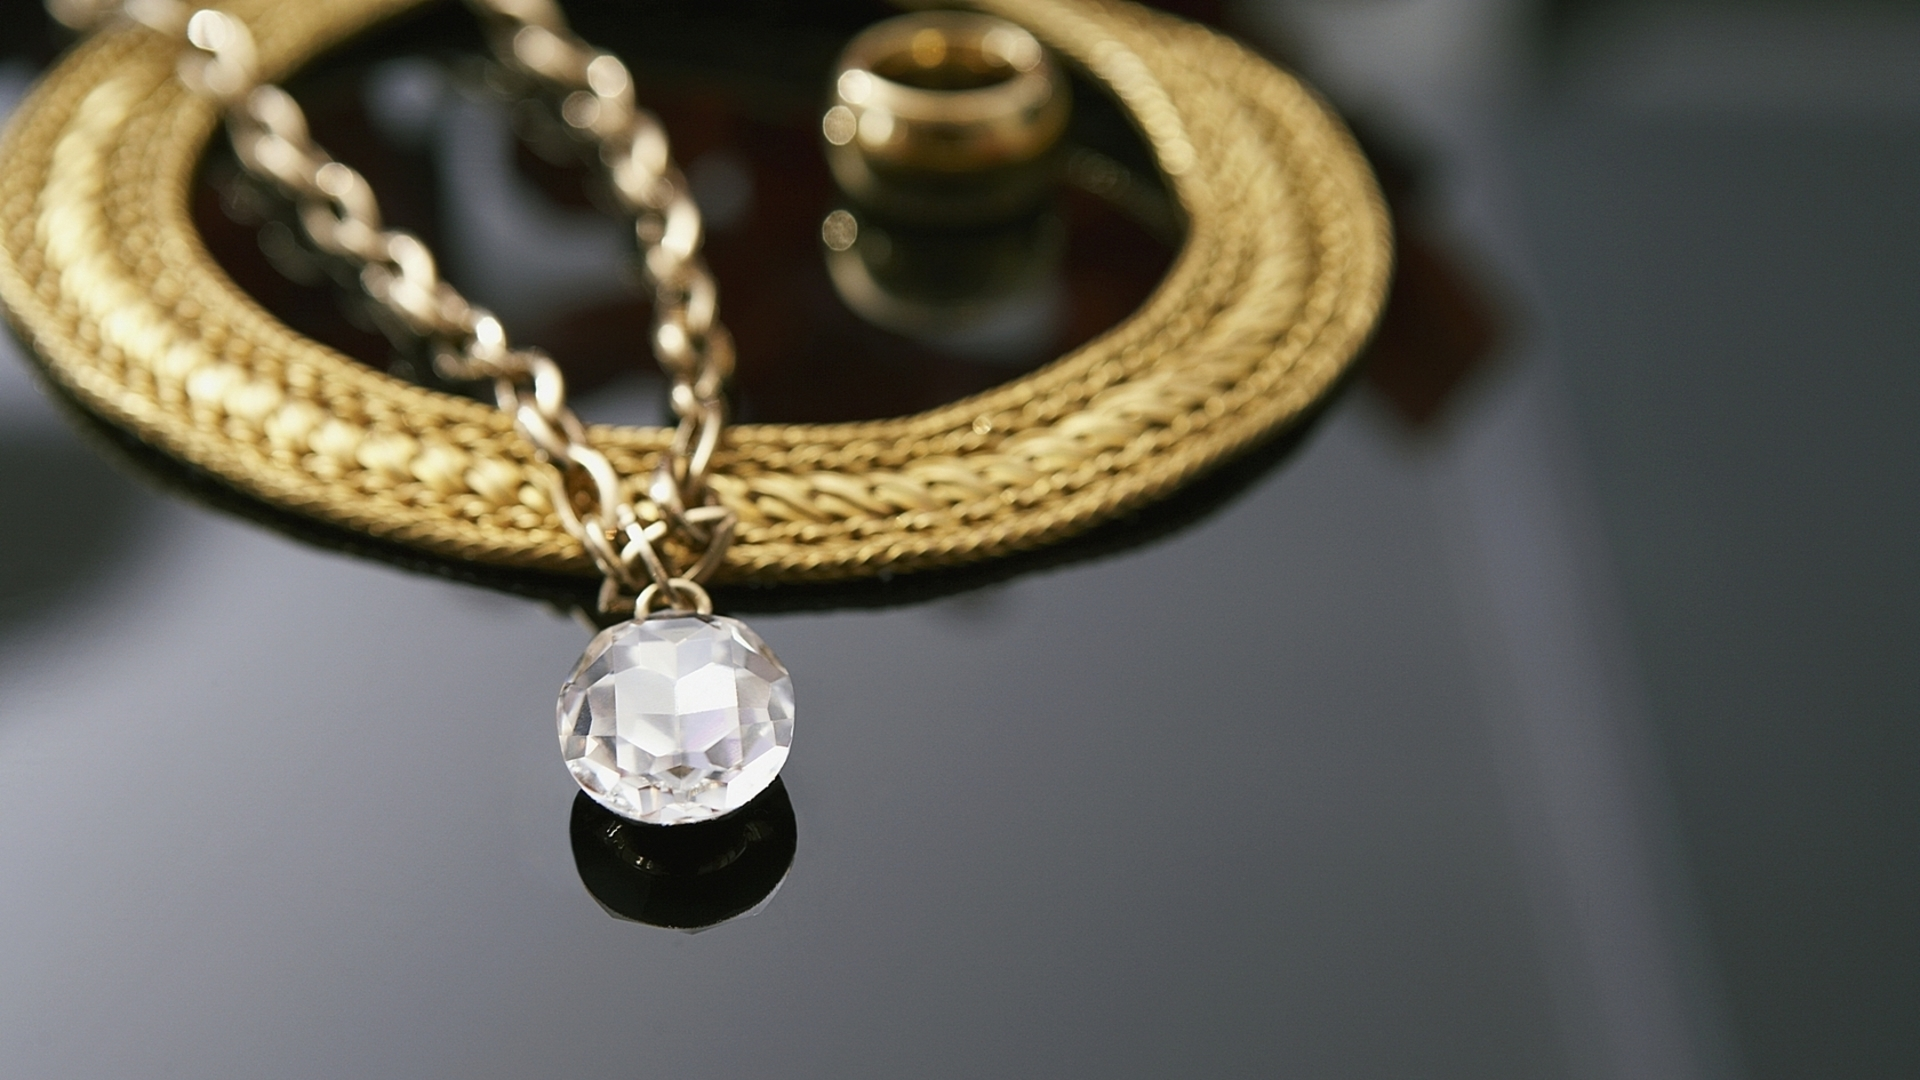 #38708316 Jewellery Wallpaper for PC, Mobile